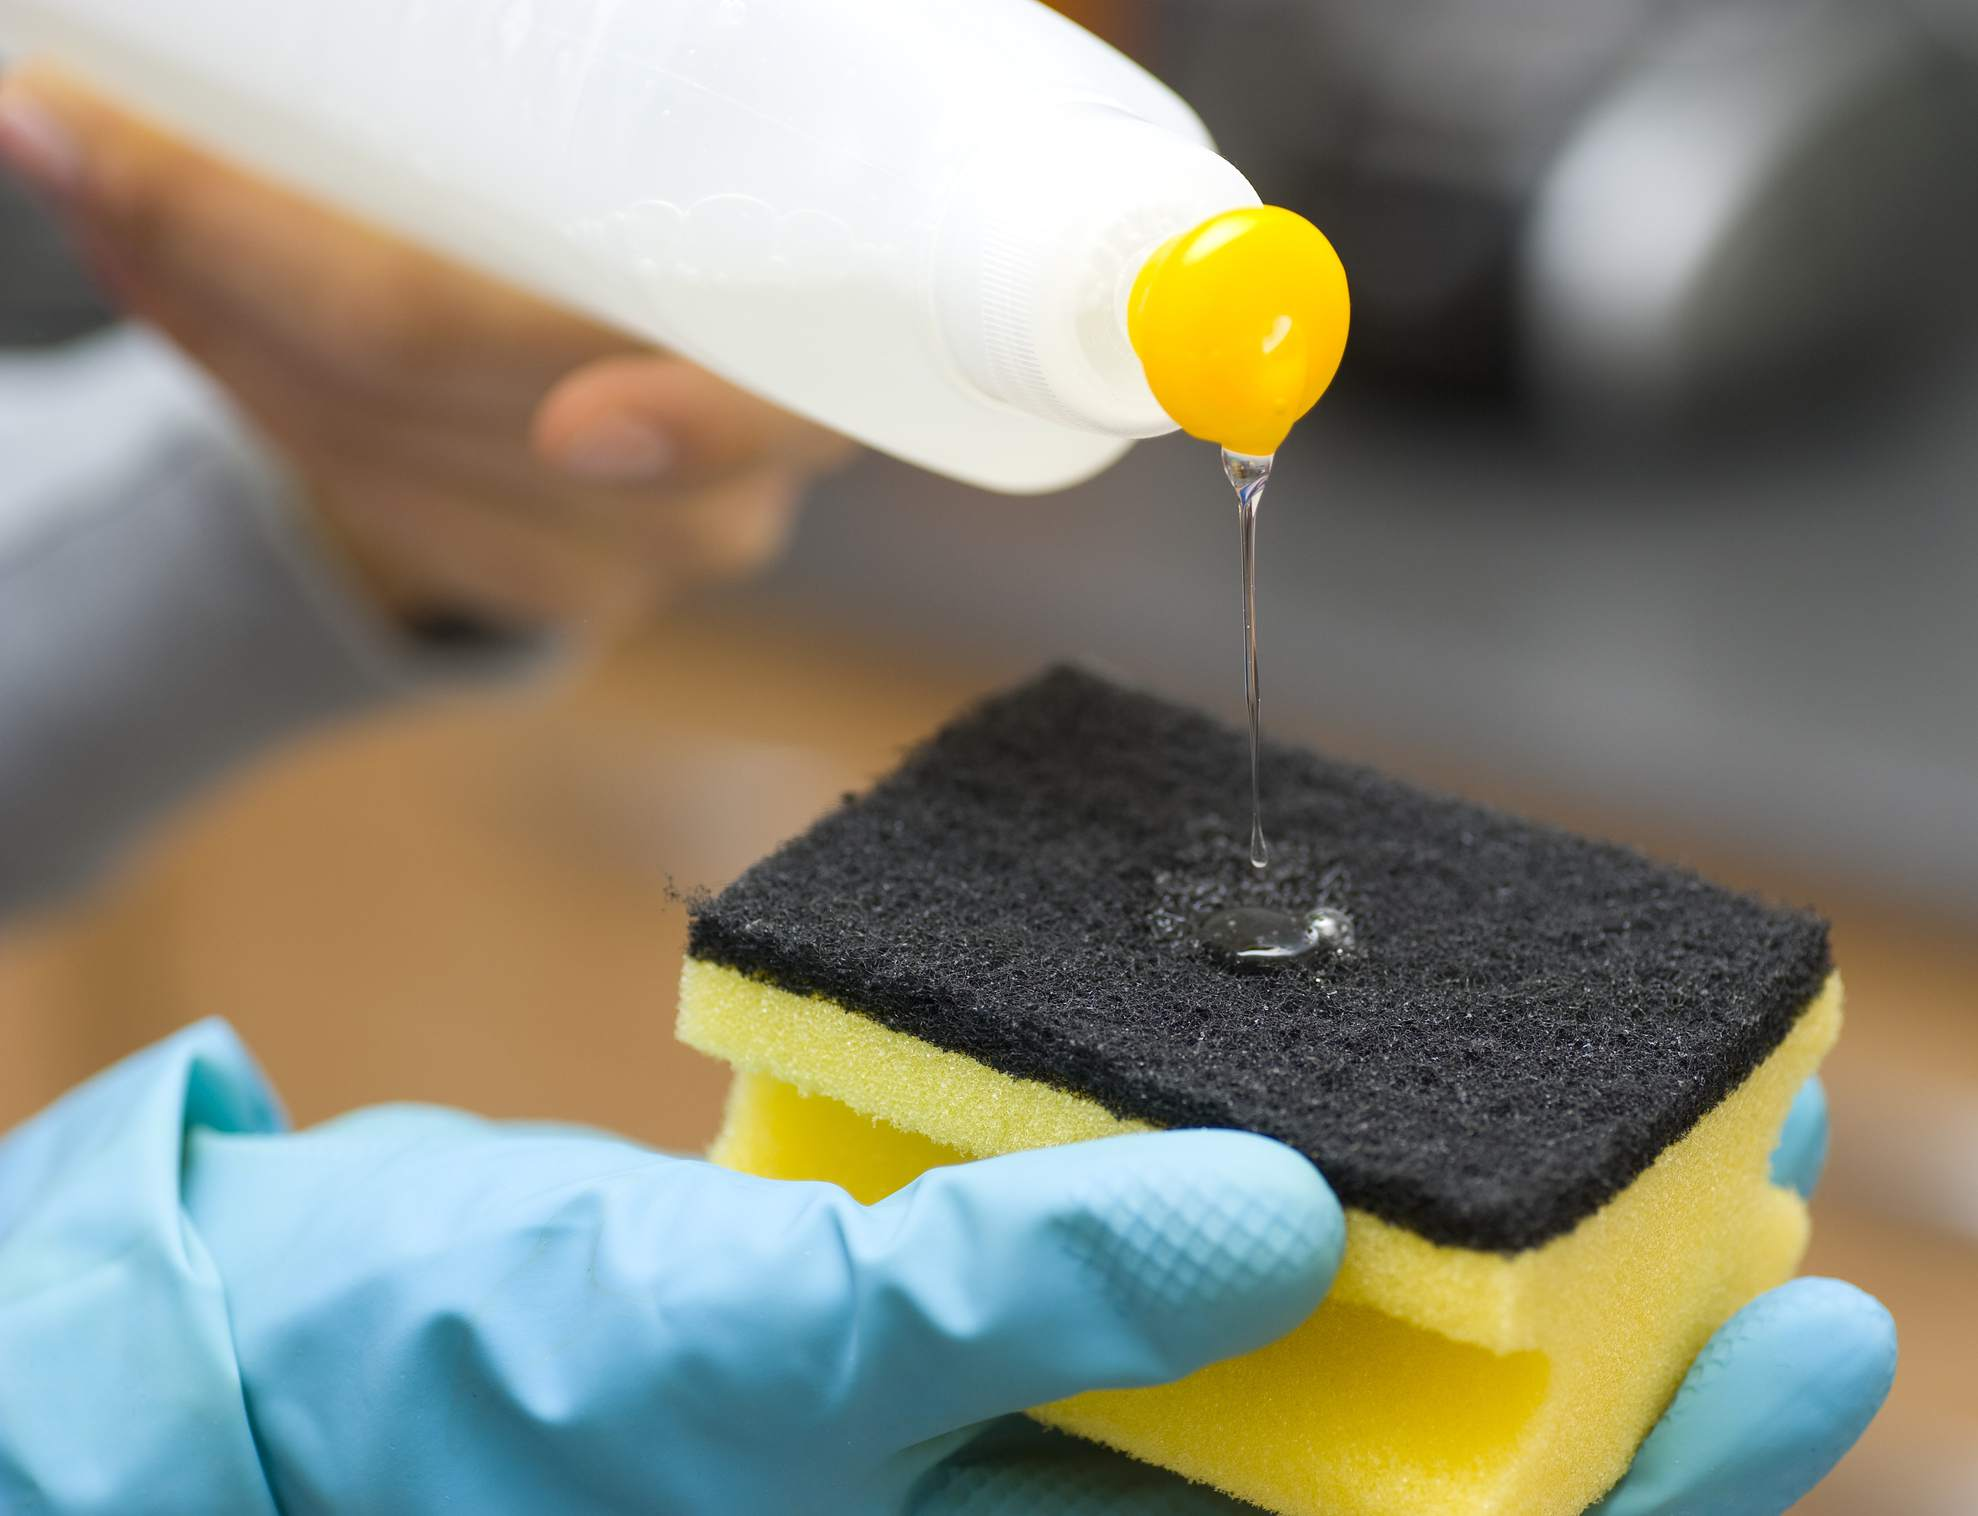 Squeezing dish soap into sponge